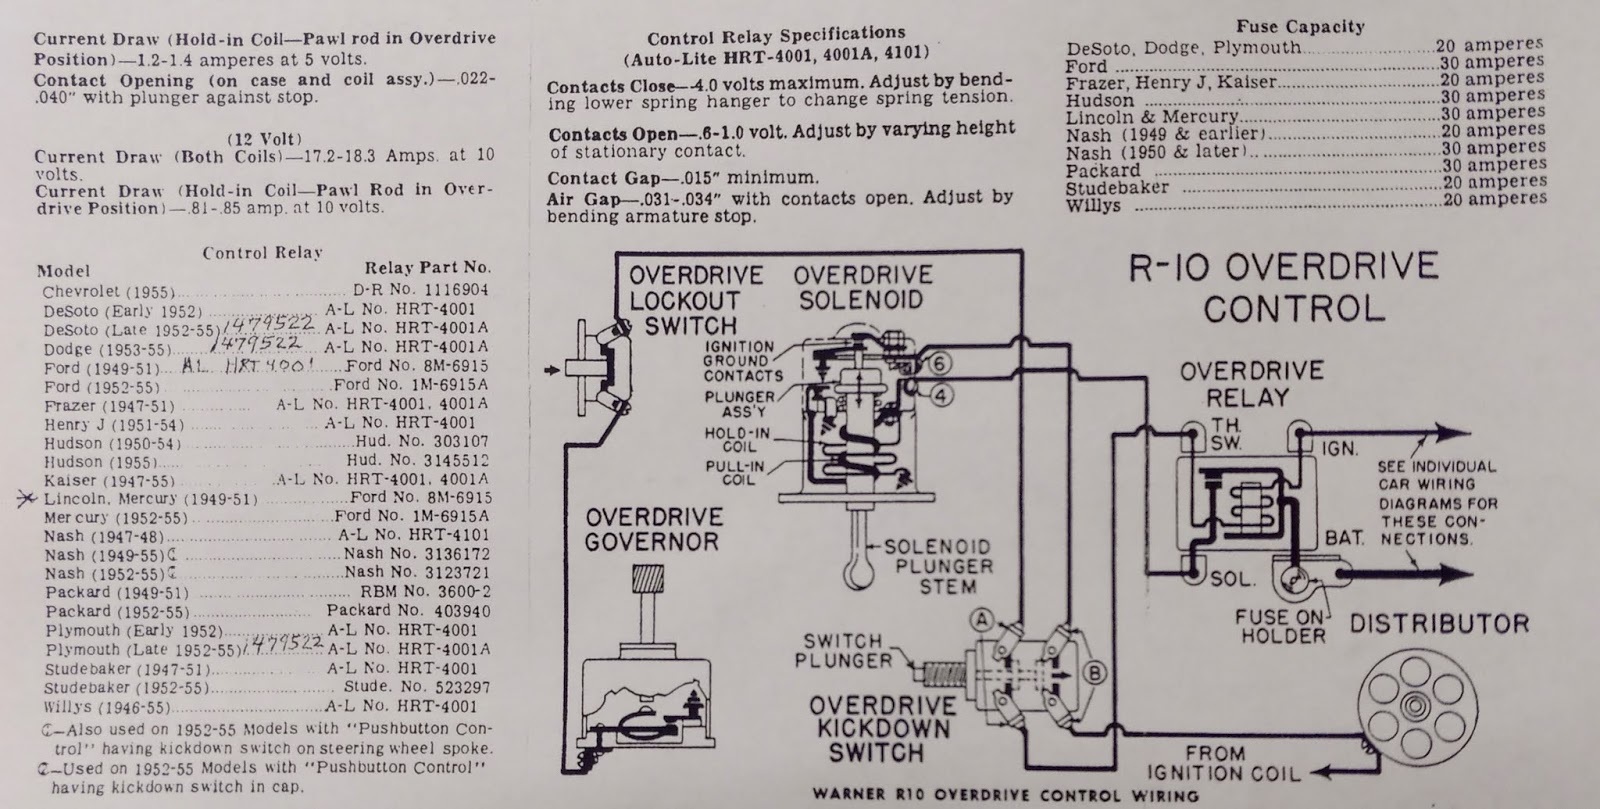 Garage Tech With Randy Rundle Yet More Borg Warner Overdrive 12 Volt Solenoid Wiring Diagram 4 Post There Is Also Some Technical Troubleshooting And Related Information On Both Of These Pages The Clearly One Before 1951 Because It Still